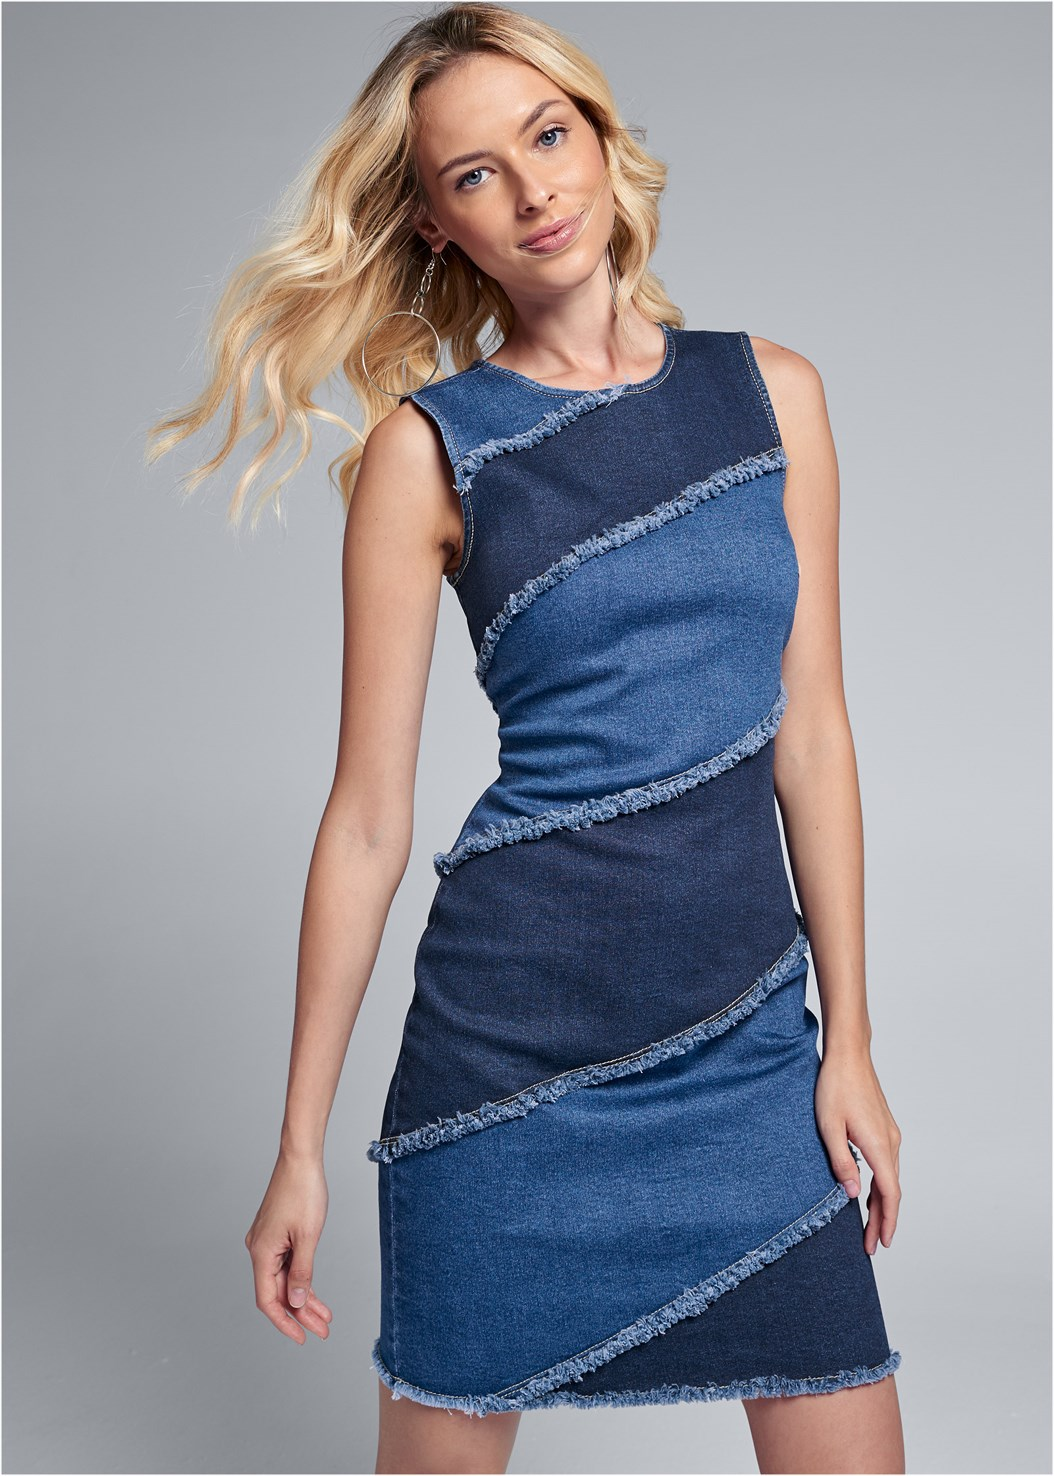 Two Toned Denim Dress,Lucite Detail Heels,Color Block Hoop Earrings